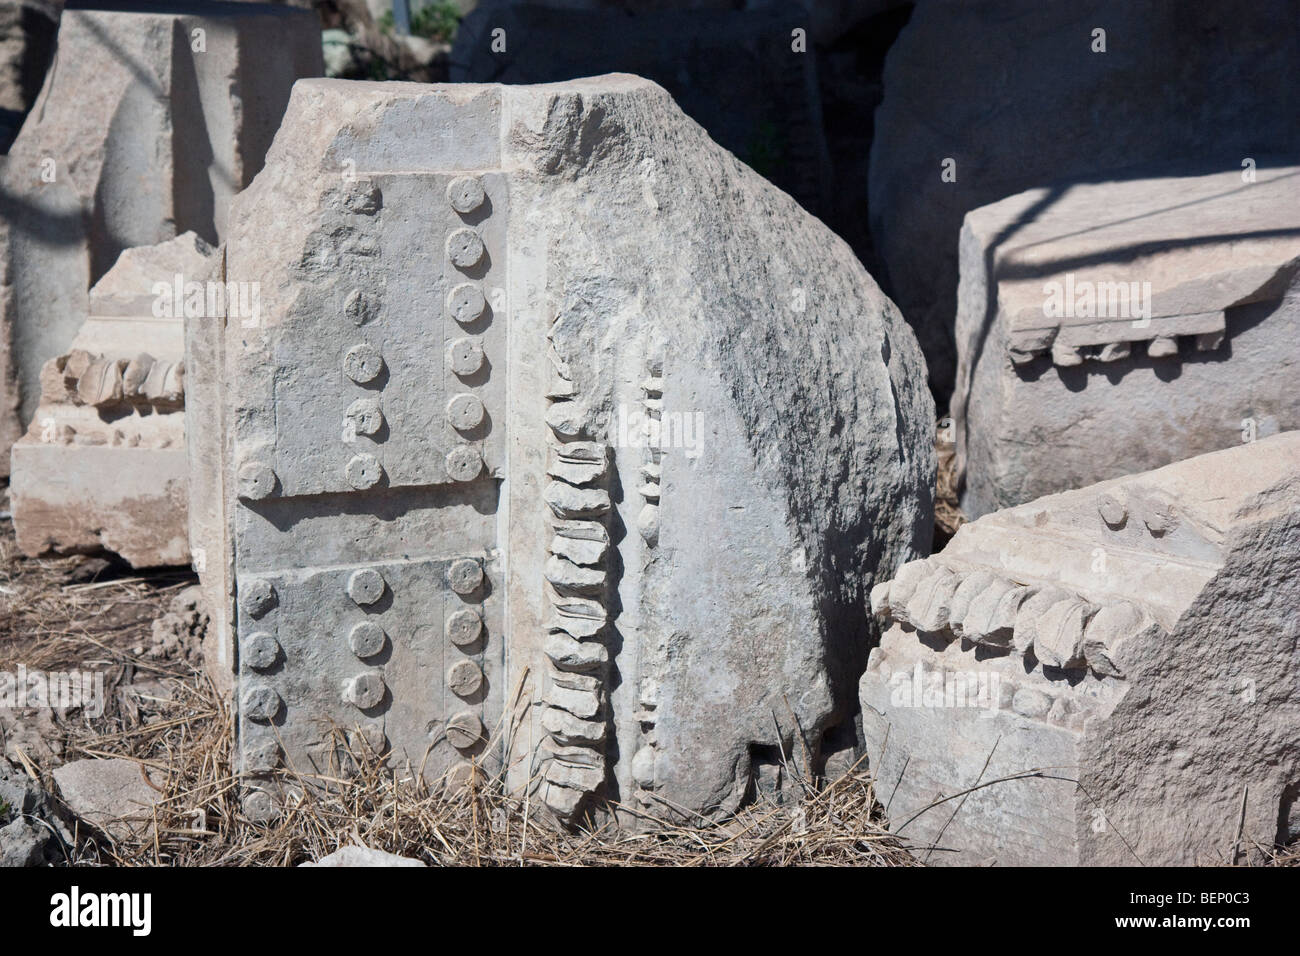 Architectural fragments from the cornice of the fourth-century Doric temple at Megara Hybleia, Sicily. - Stock Image